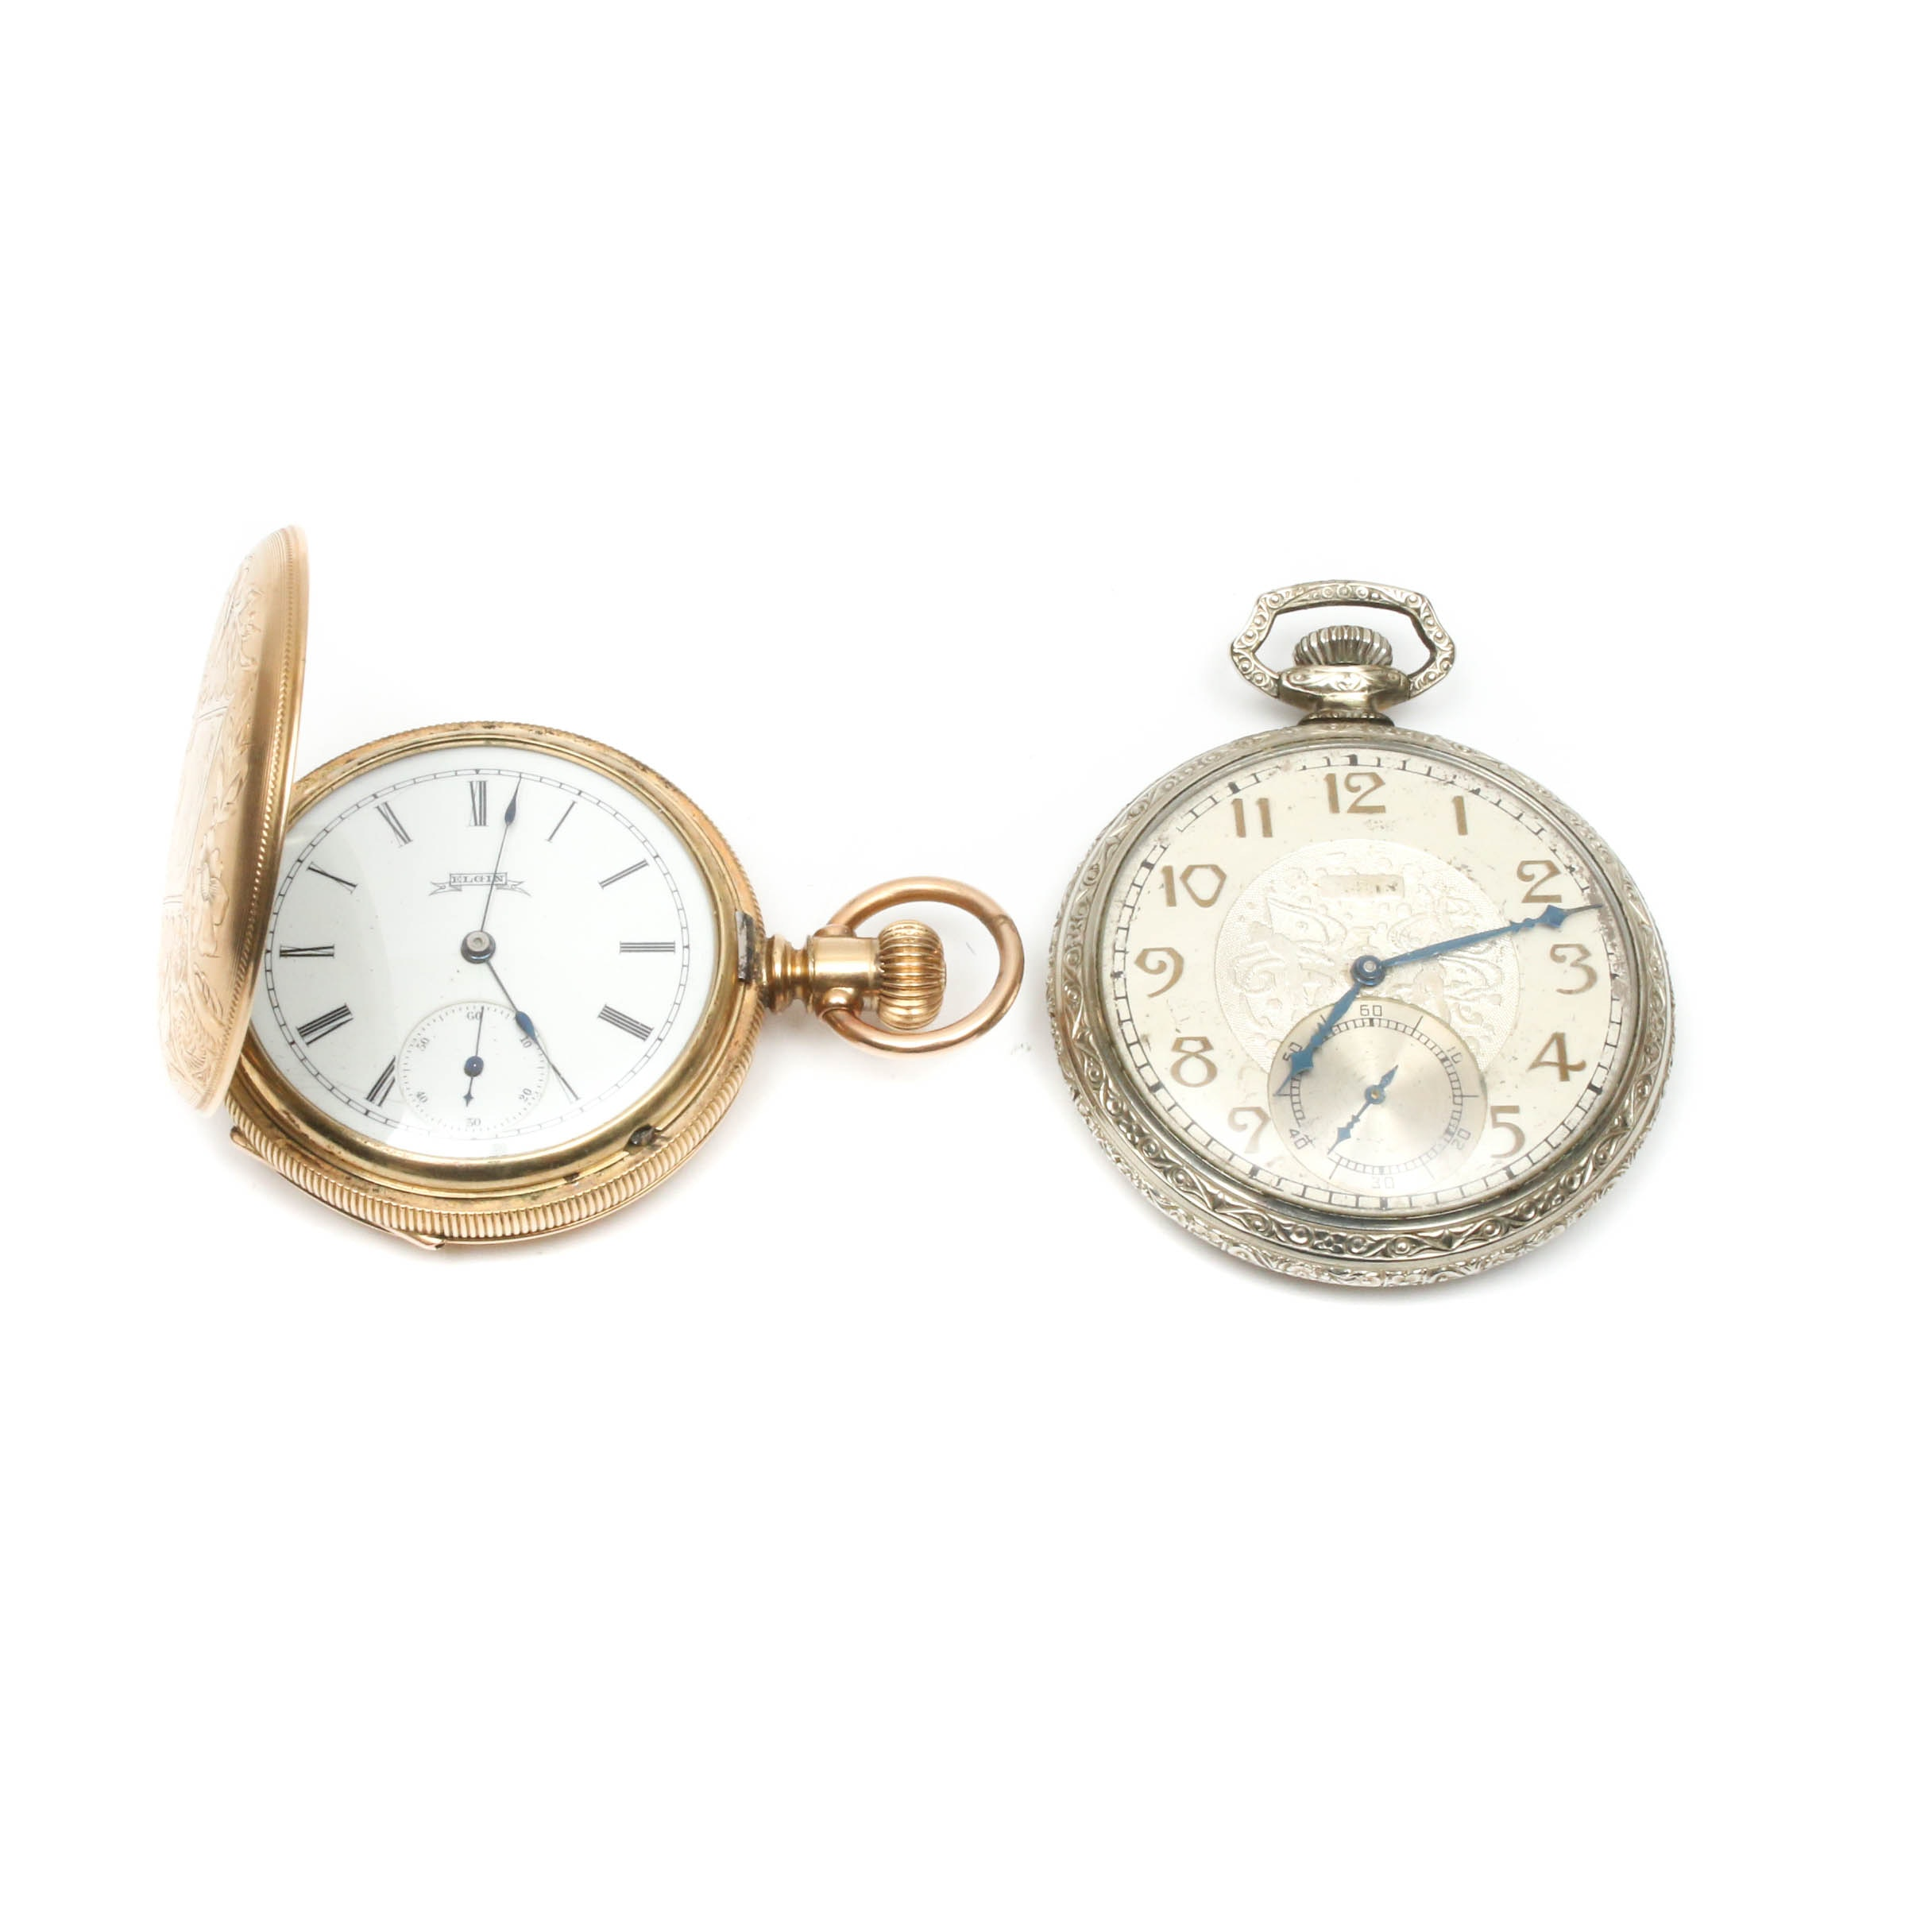 Elgin Pocket Watches, Early to Mid 20th Century